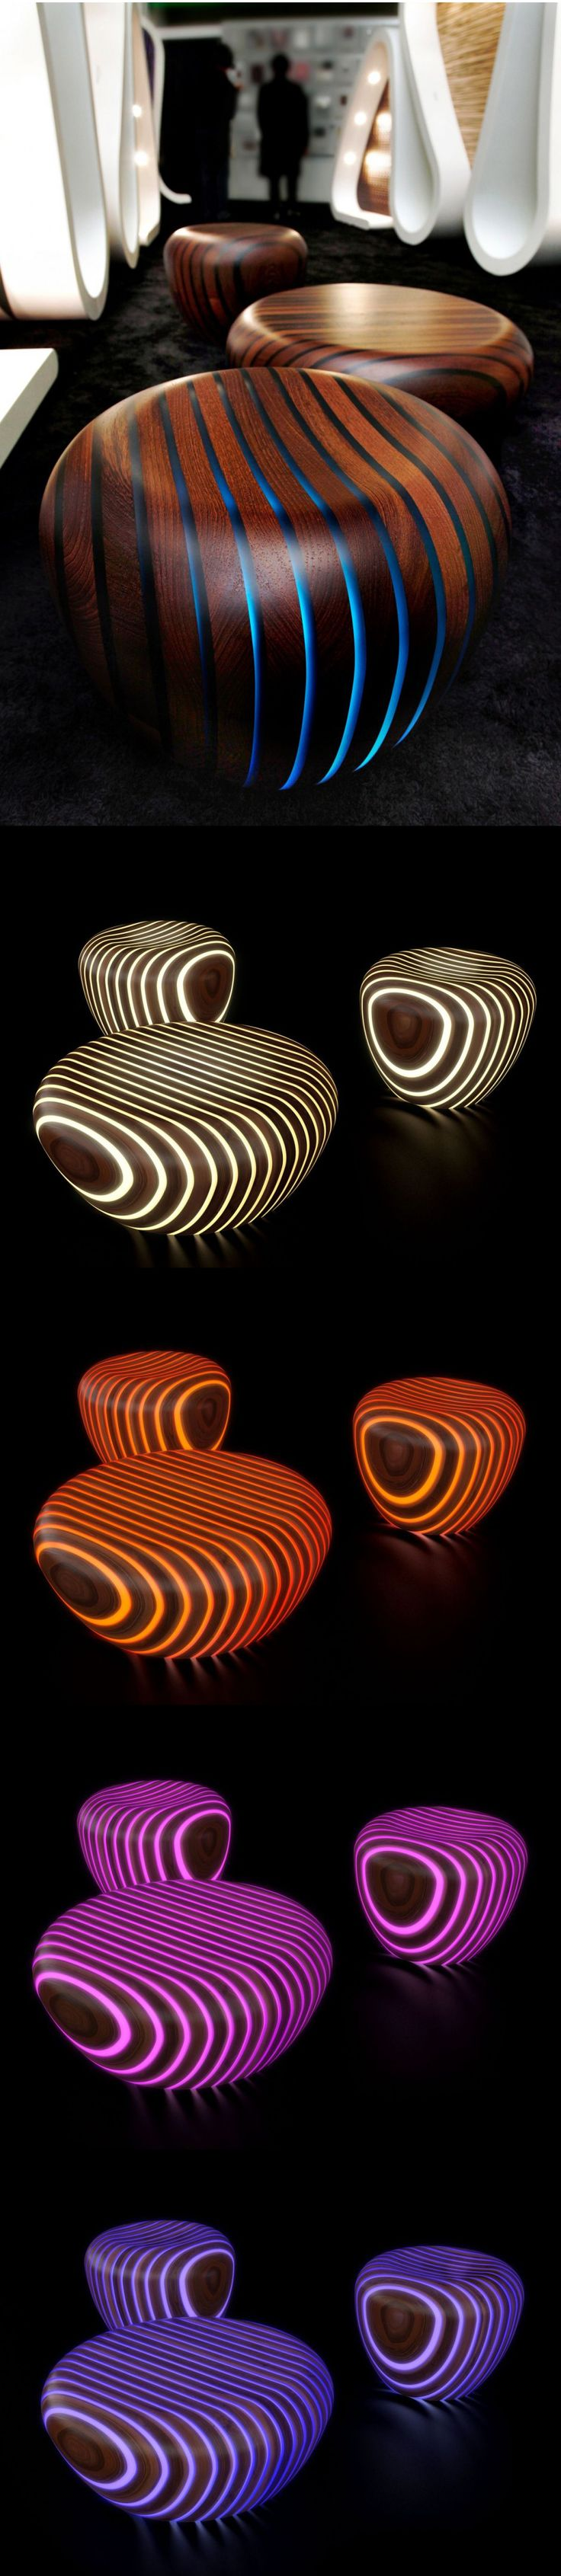 Bright Woods Collection by Giancarlo Zema for Avanzini Group love this pairing of